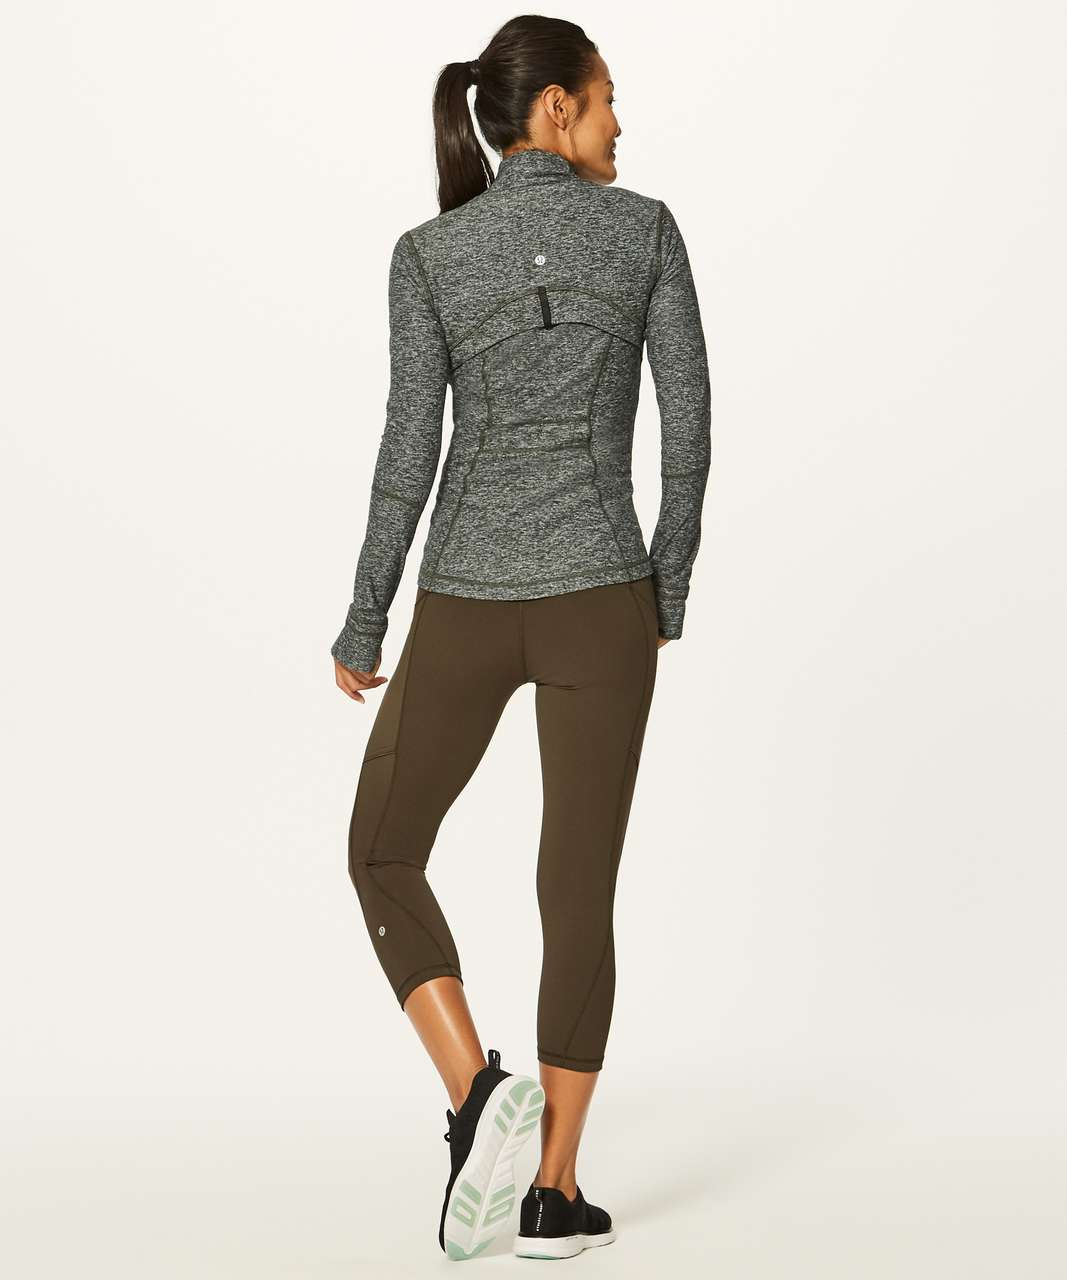 Lululemon Define Jacket (Rulu) - Heathered Gator Green